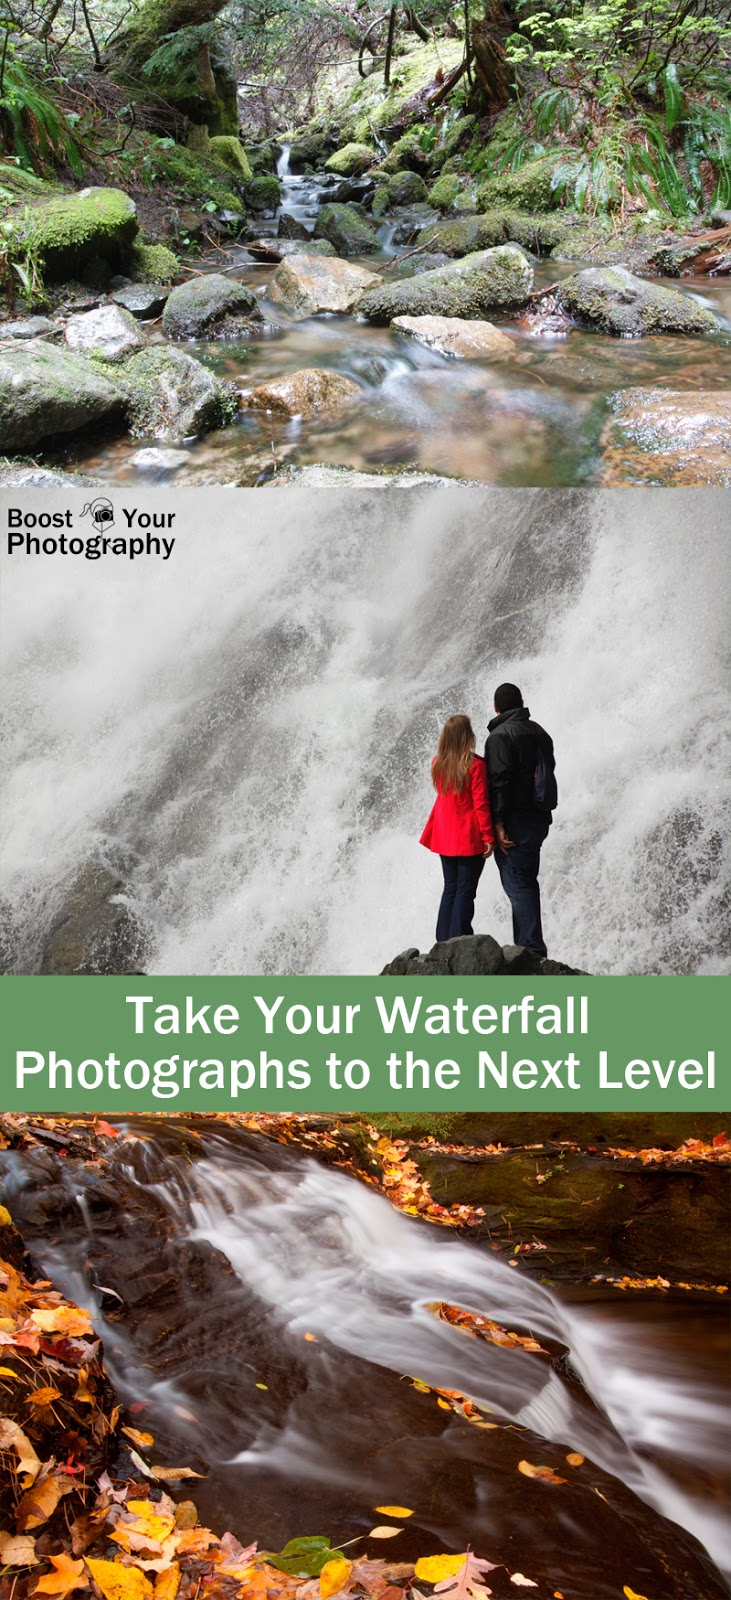 Take Your Waterfall Photographs to the Next Level | Boost Your Photography